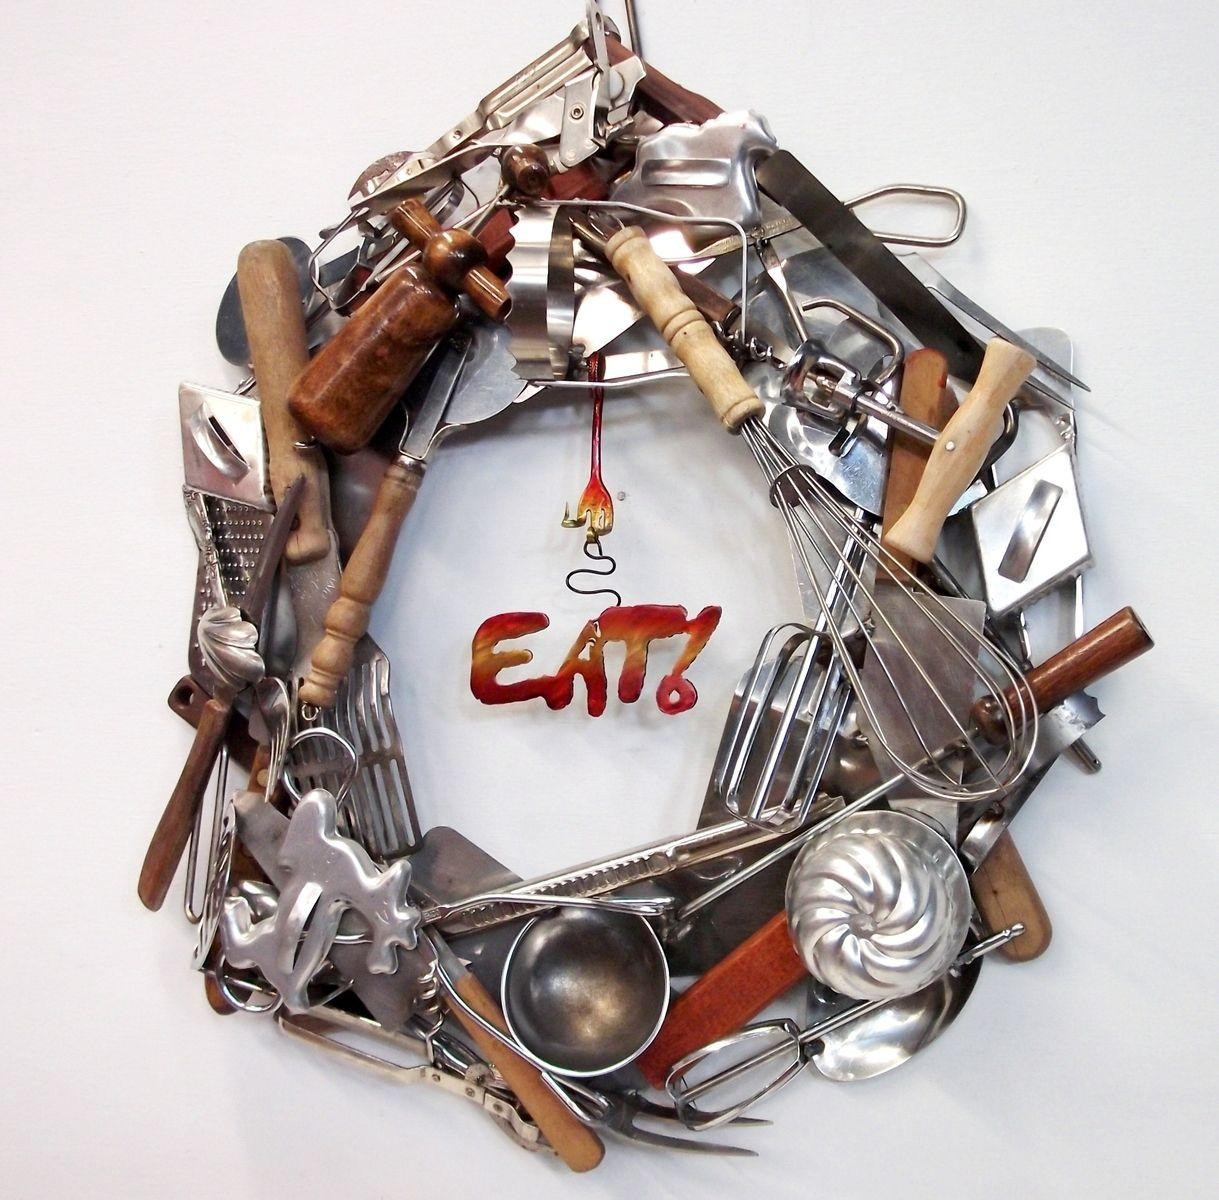 Handmade Home Decor, Custom Wreaths, Wall Art $100 – 500, Recycled Within Recycled Wall Art (Image 8 of 20)